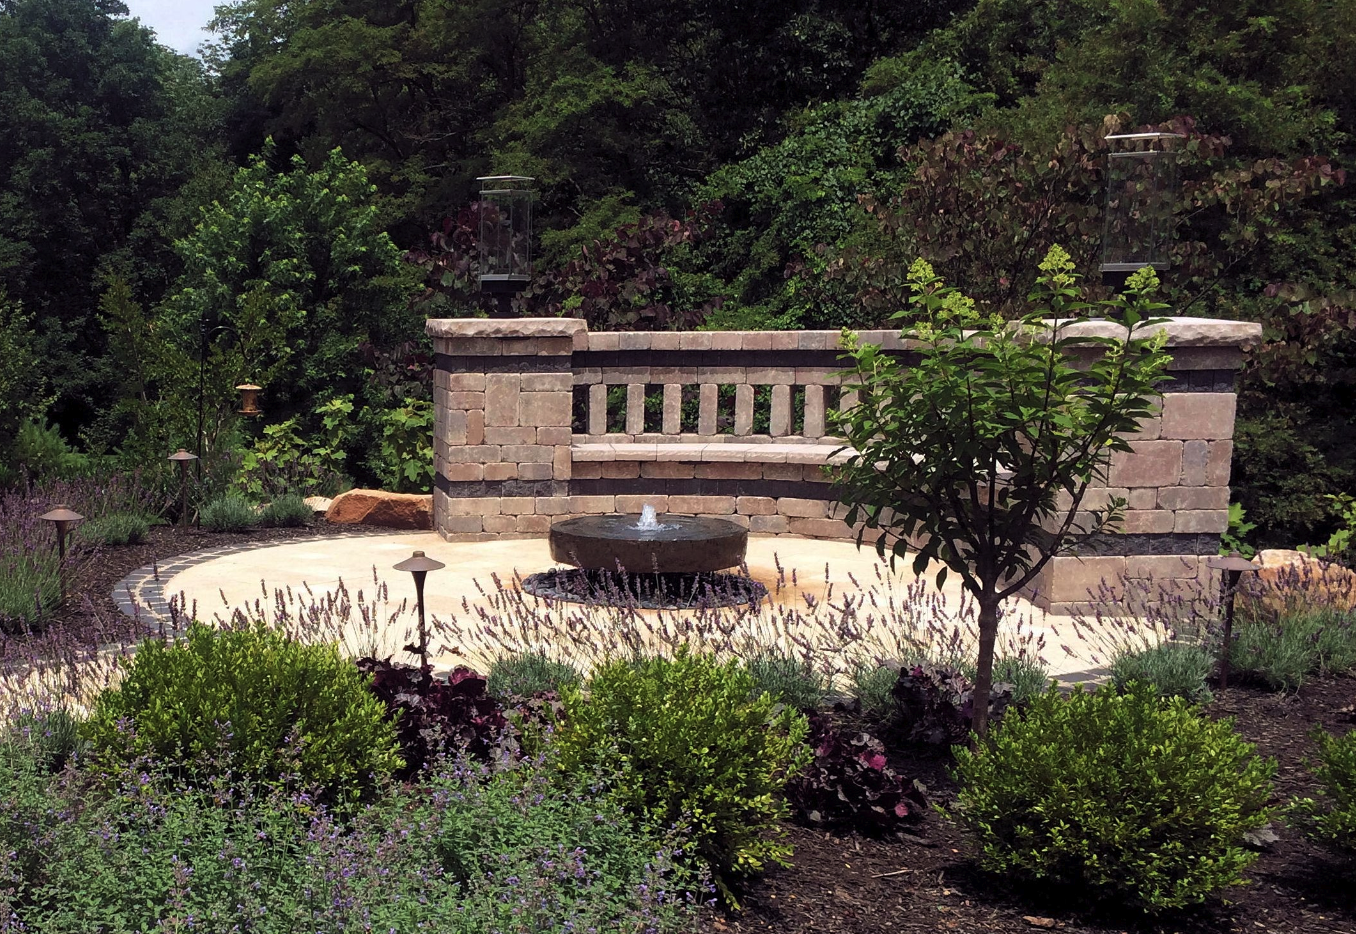 Why You Should Prioritize Sustainability in Your Mechanicsburg, PA, Landscape Design